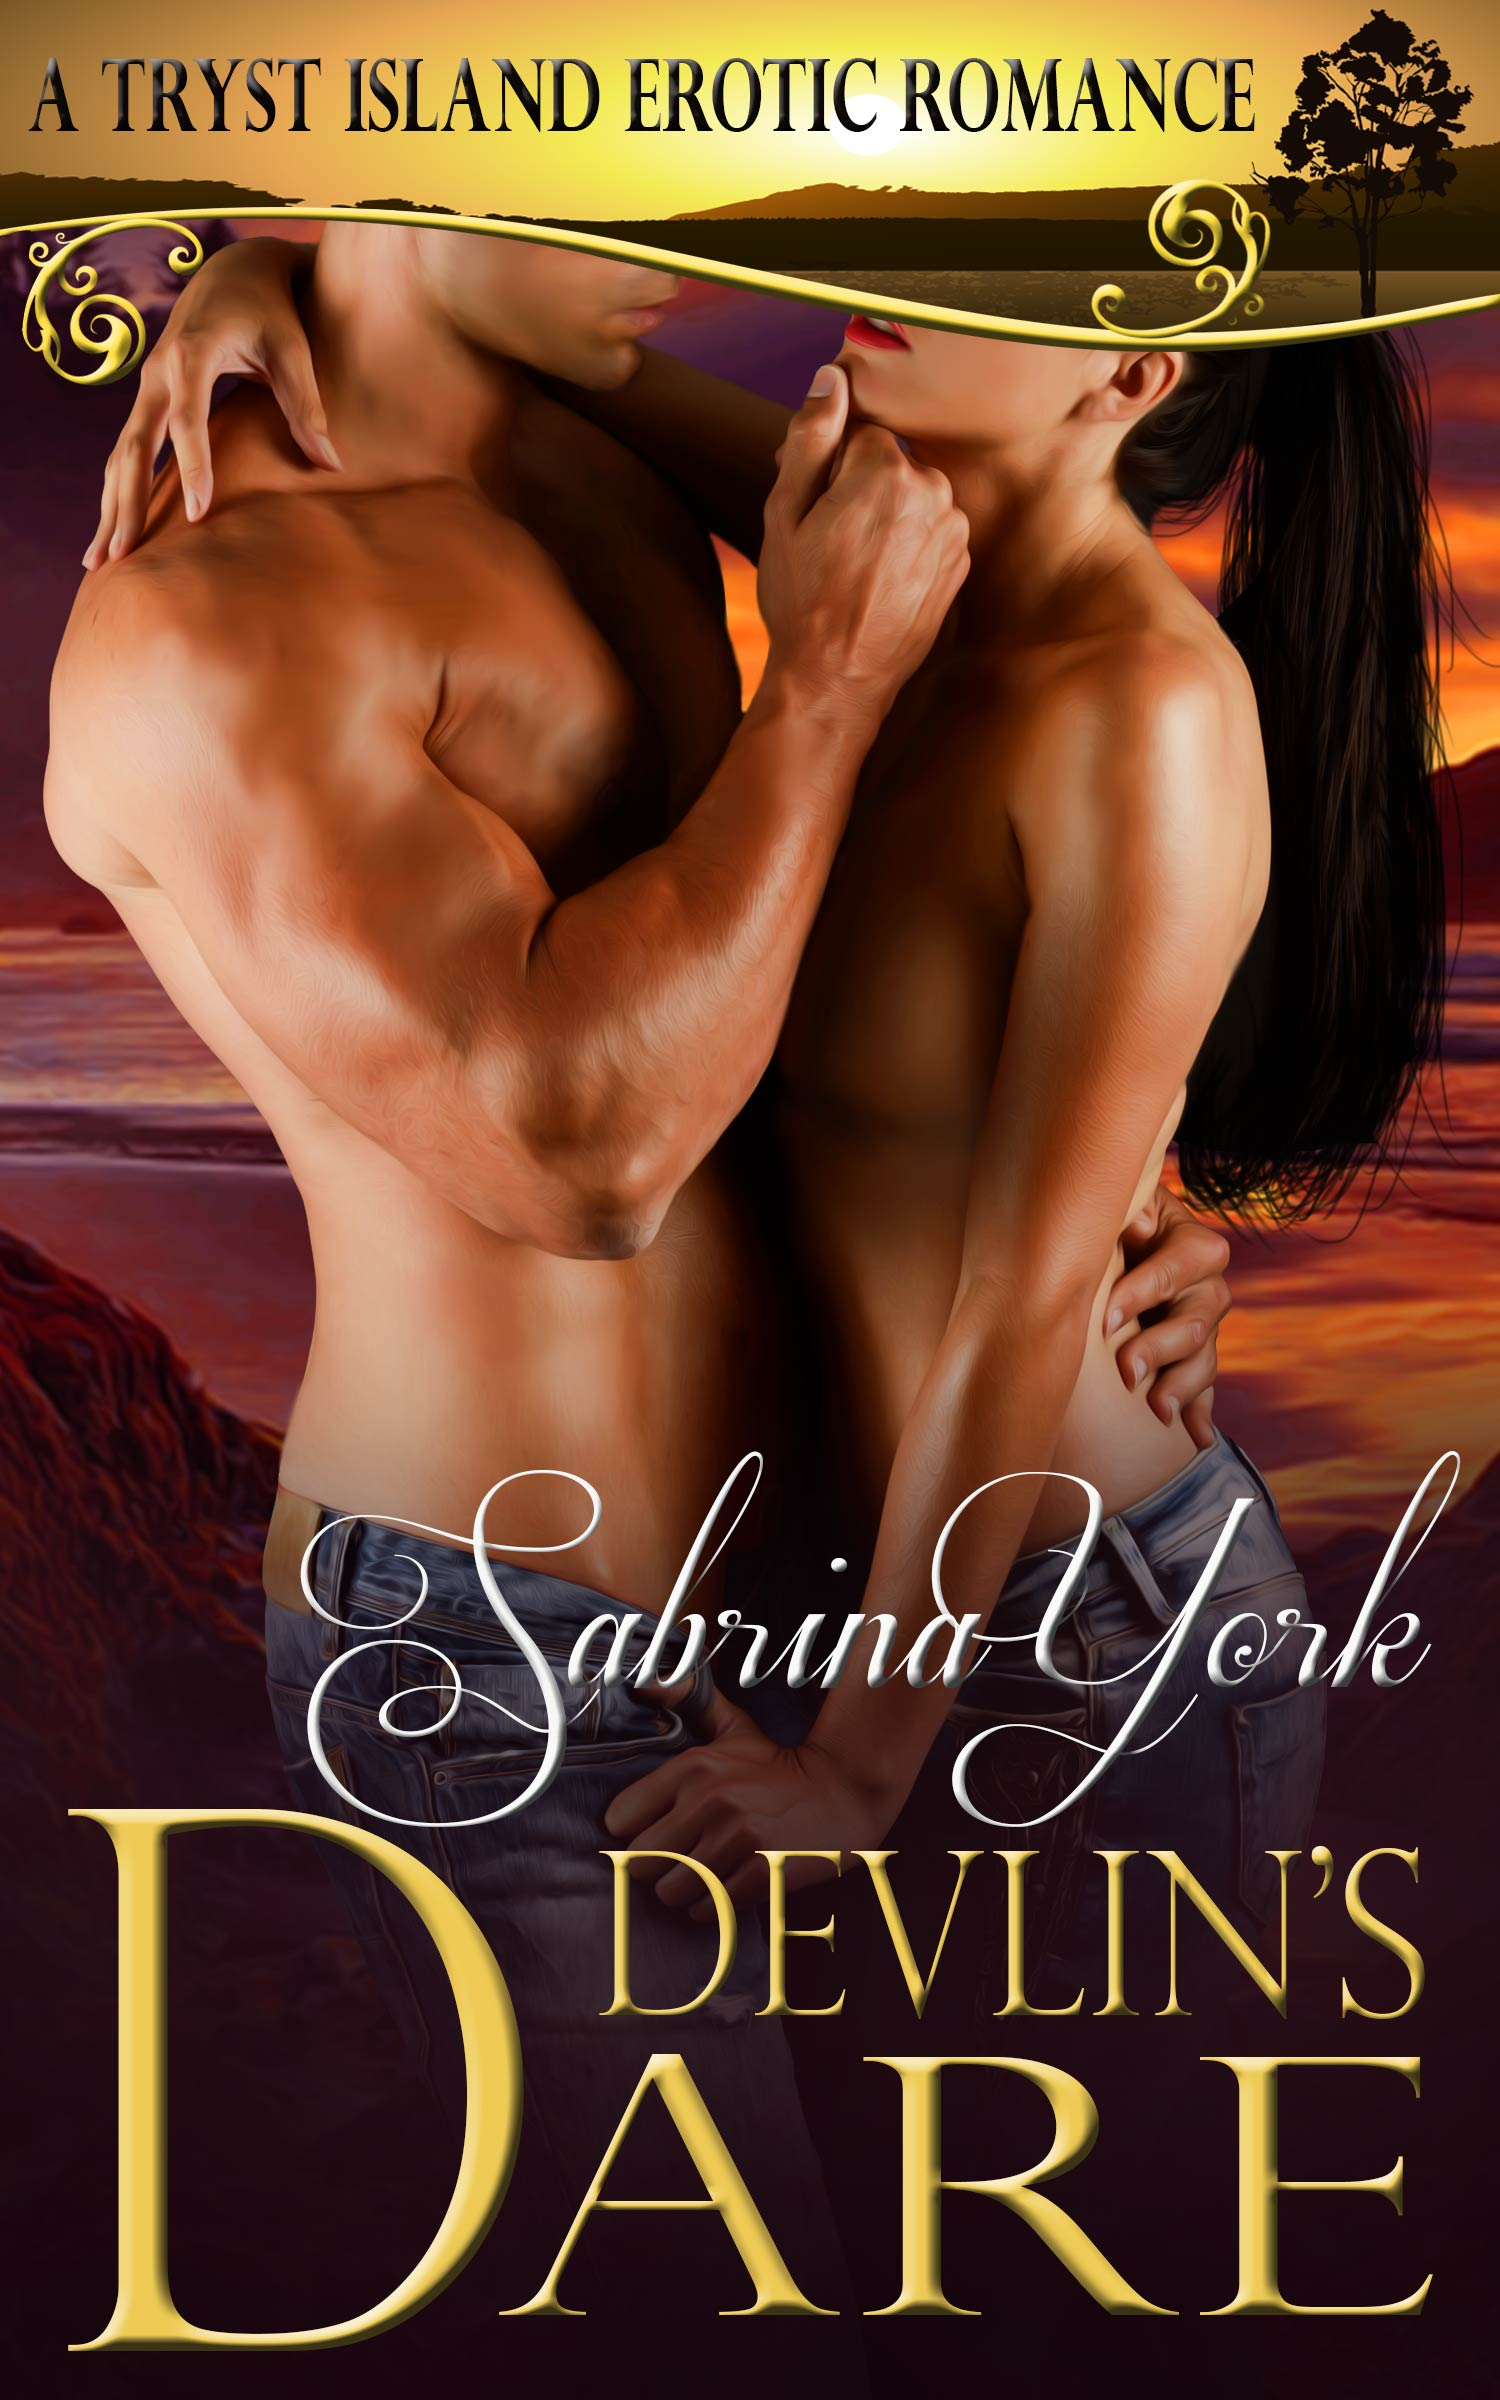 Meet Devlin, Sabrina York's new hottie